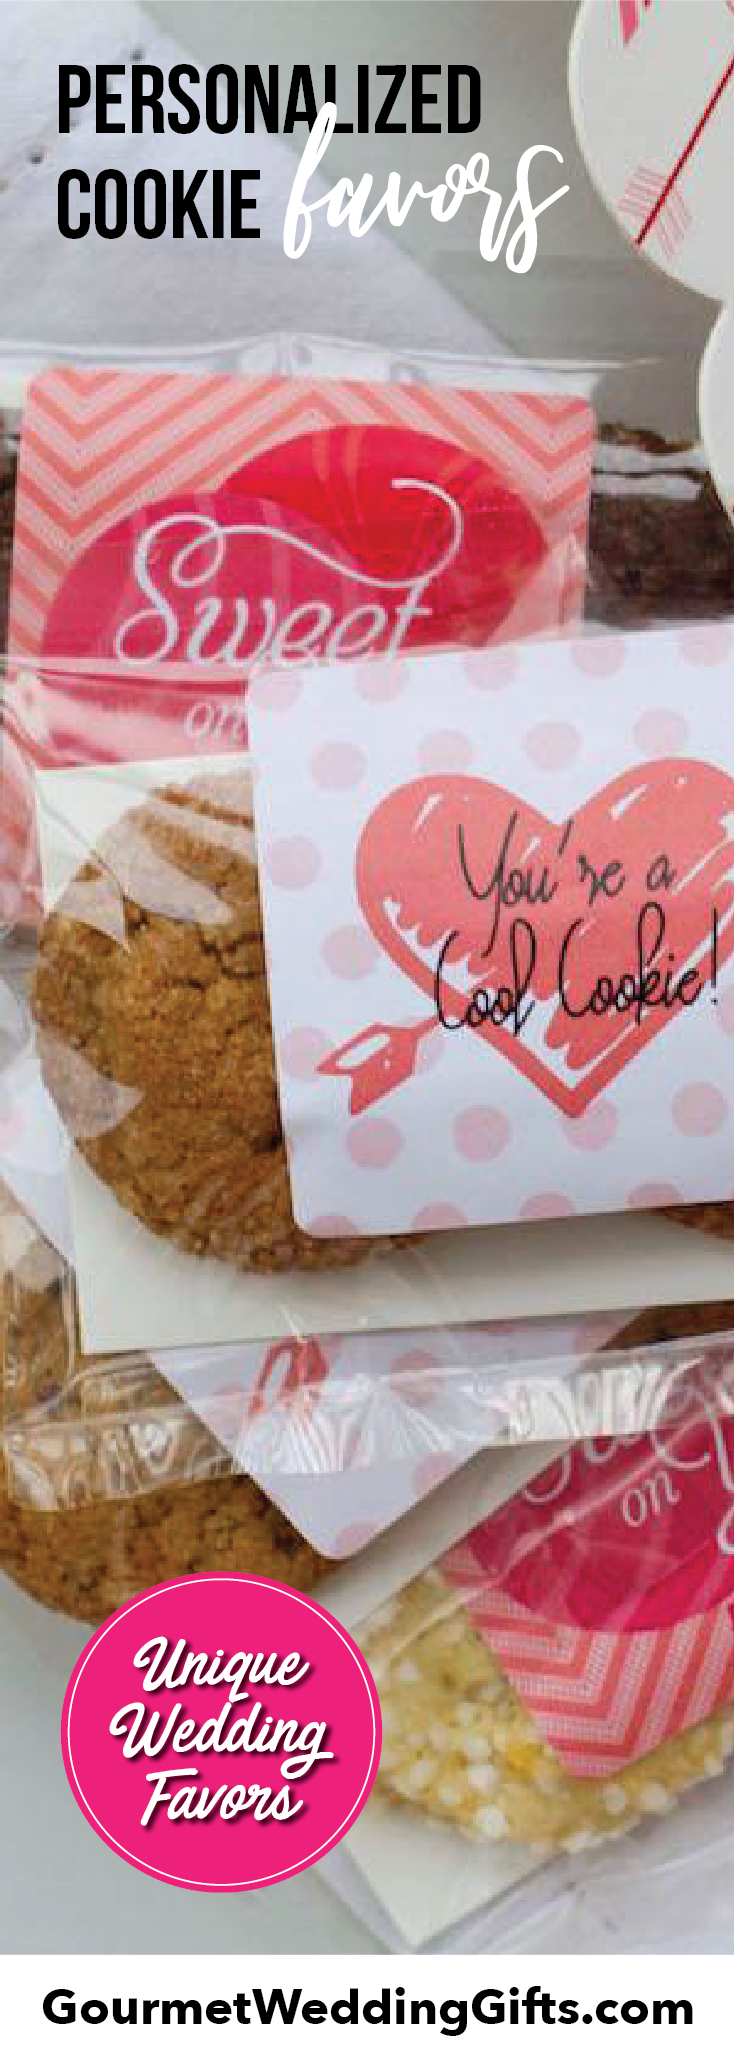 Personalized Cookie Favors (2 packs) | Pinterest | Personalized ...